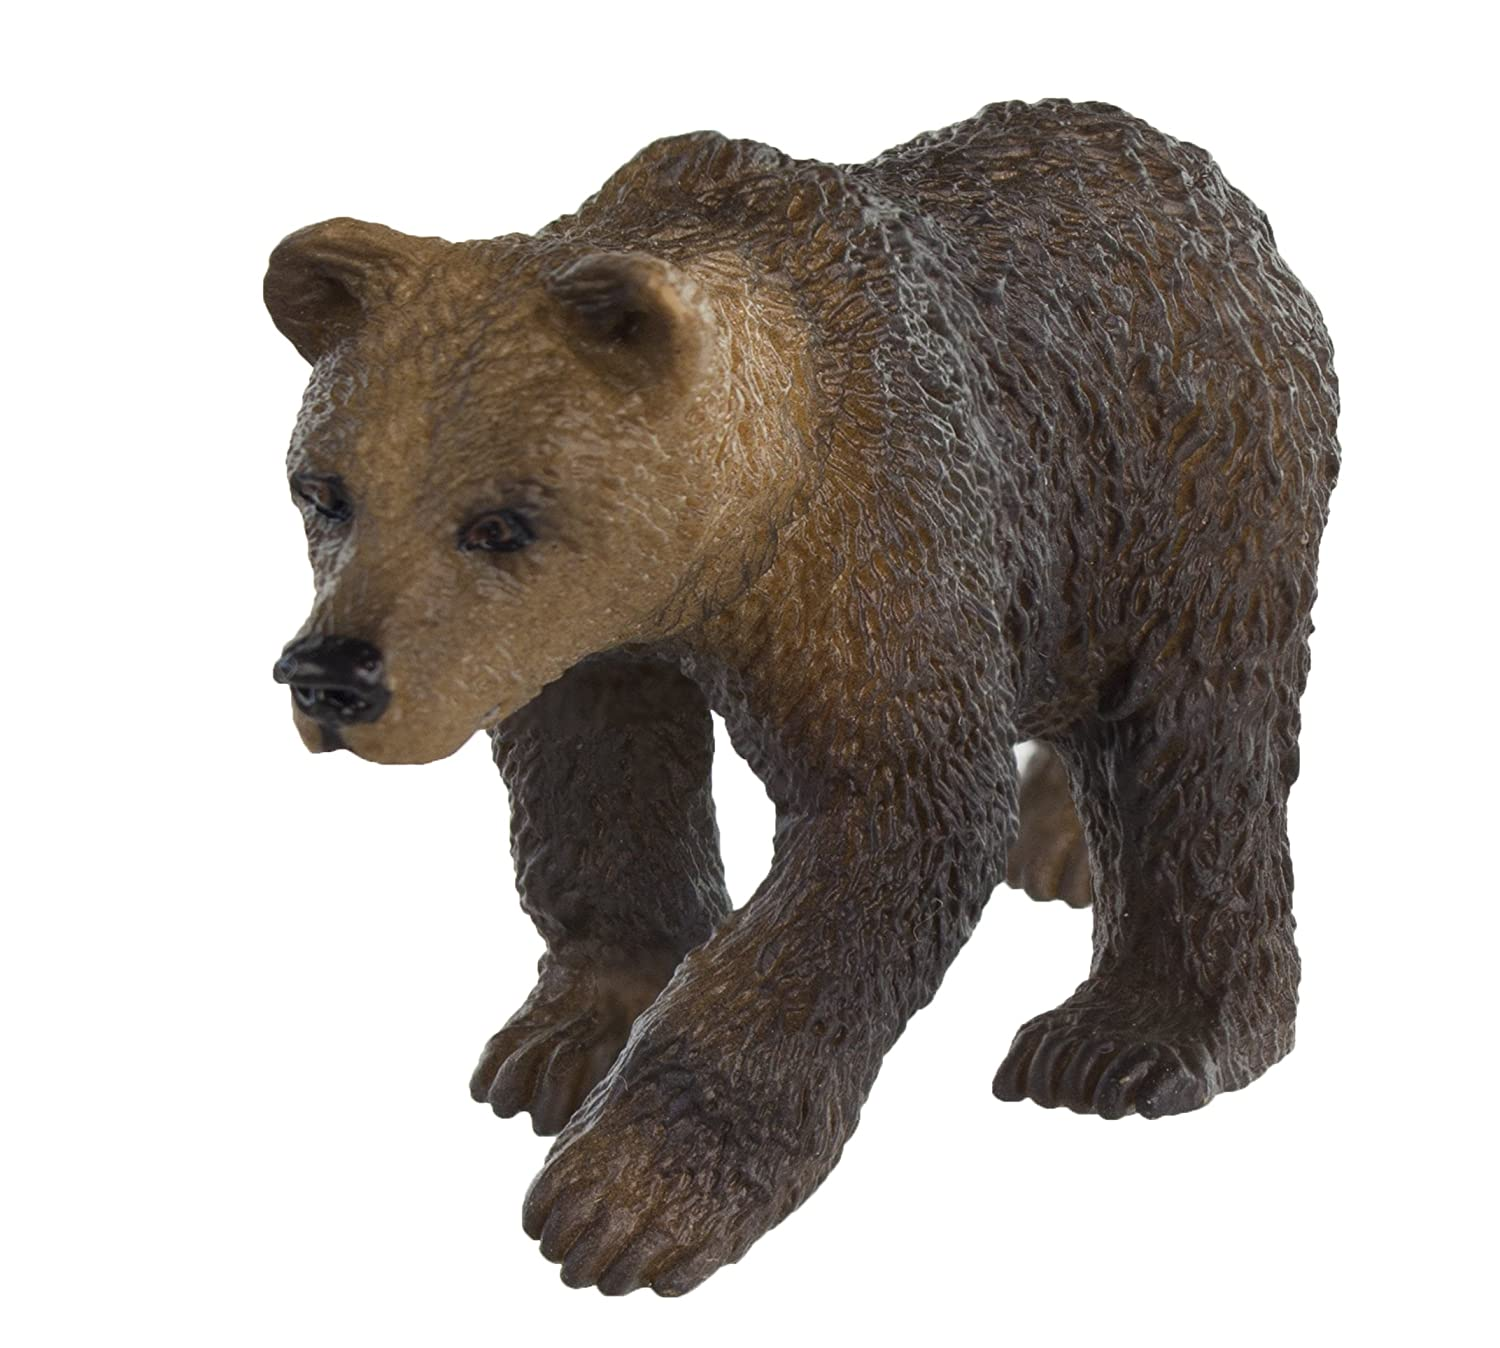 Safari Ltd Wild Safari North American Wildlife - Grizzly Bear Cub - Educational Hand Painted Figurine - Quality Construction from Safe and BPA Free Materials - For Ages 3 and Up by Safari